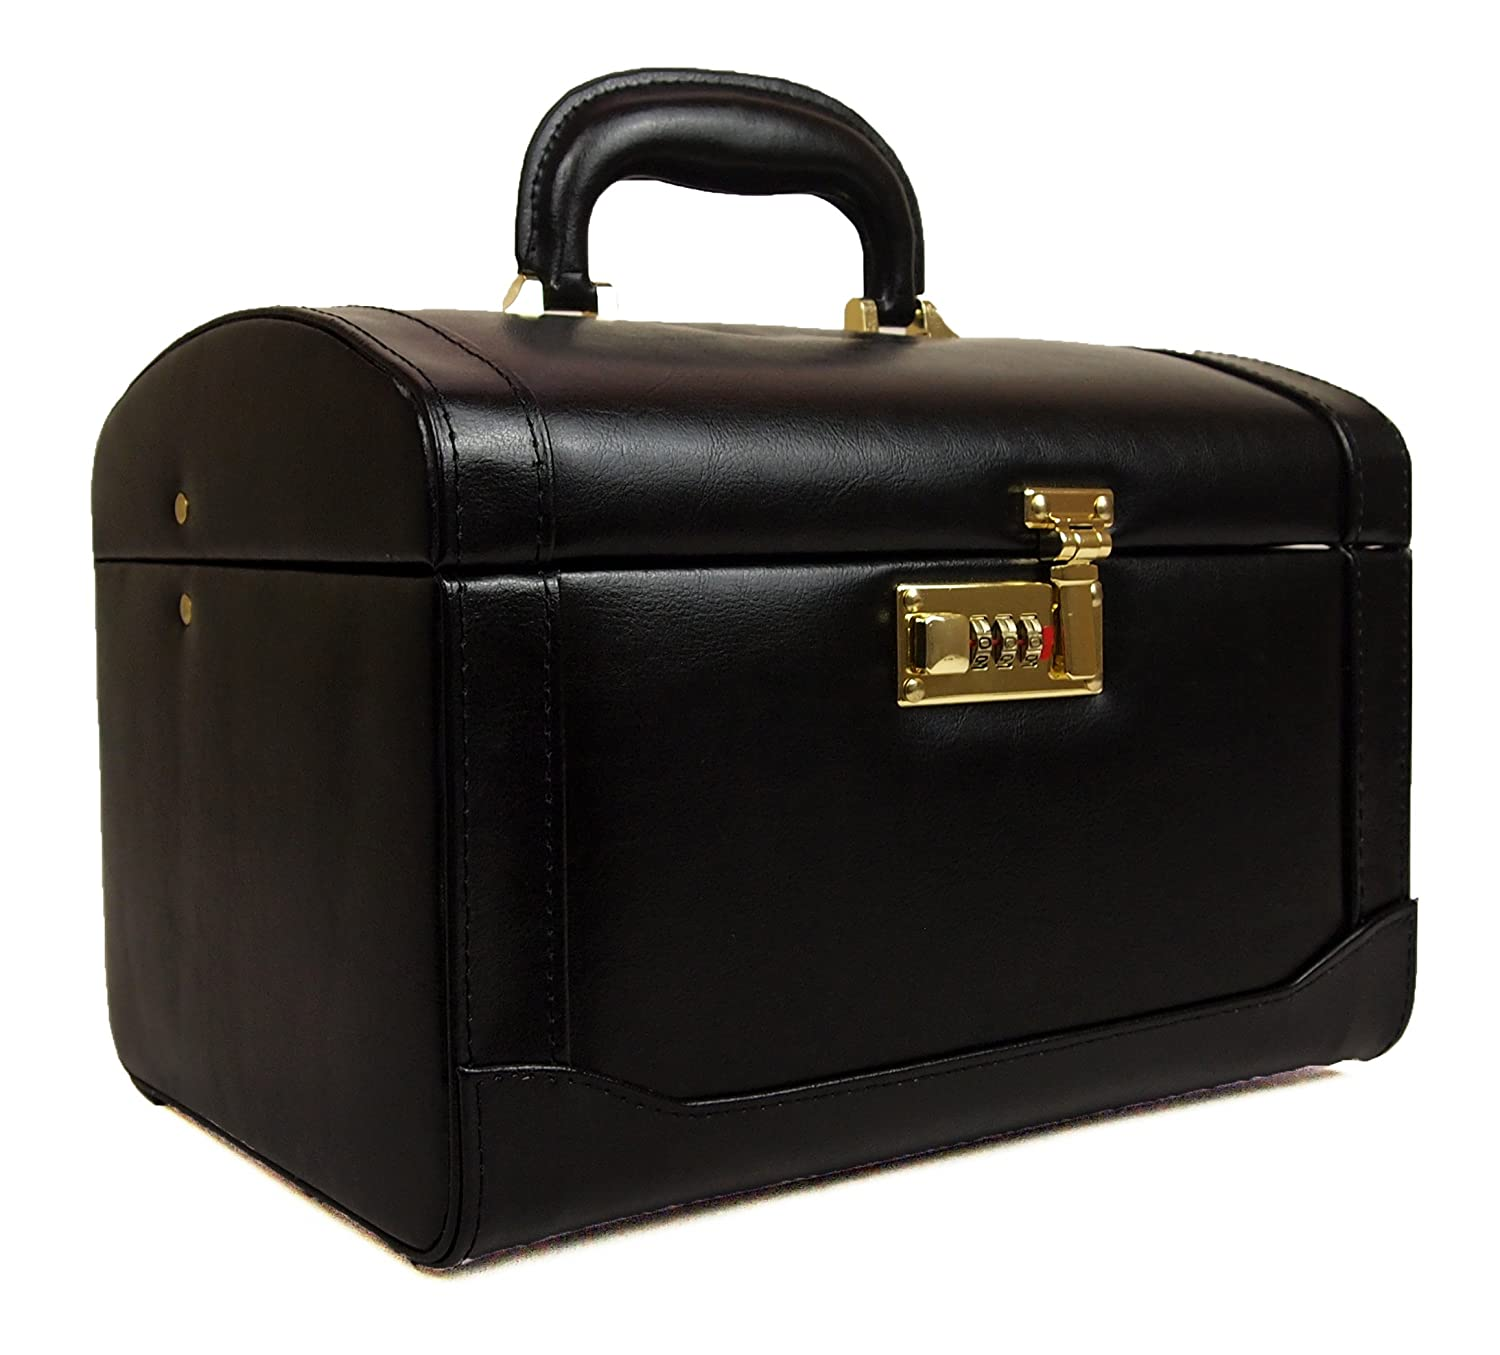 High Quality Large Hand Crafted Leather Vanity Make Up Jewellery Toiletries